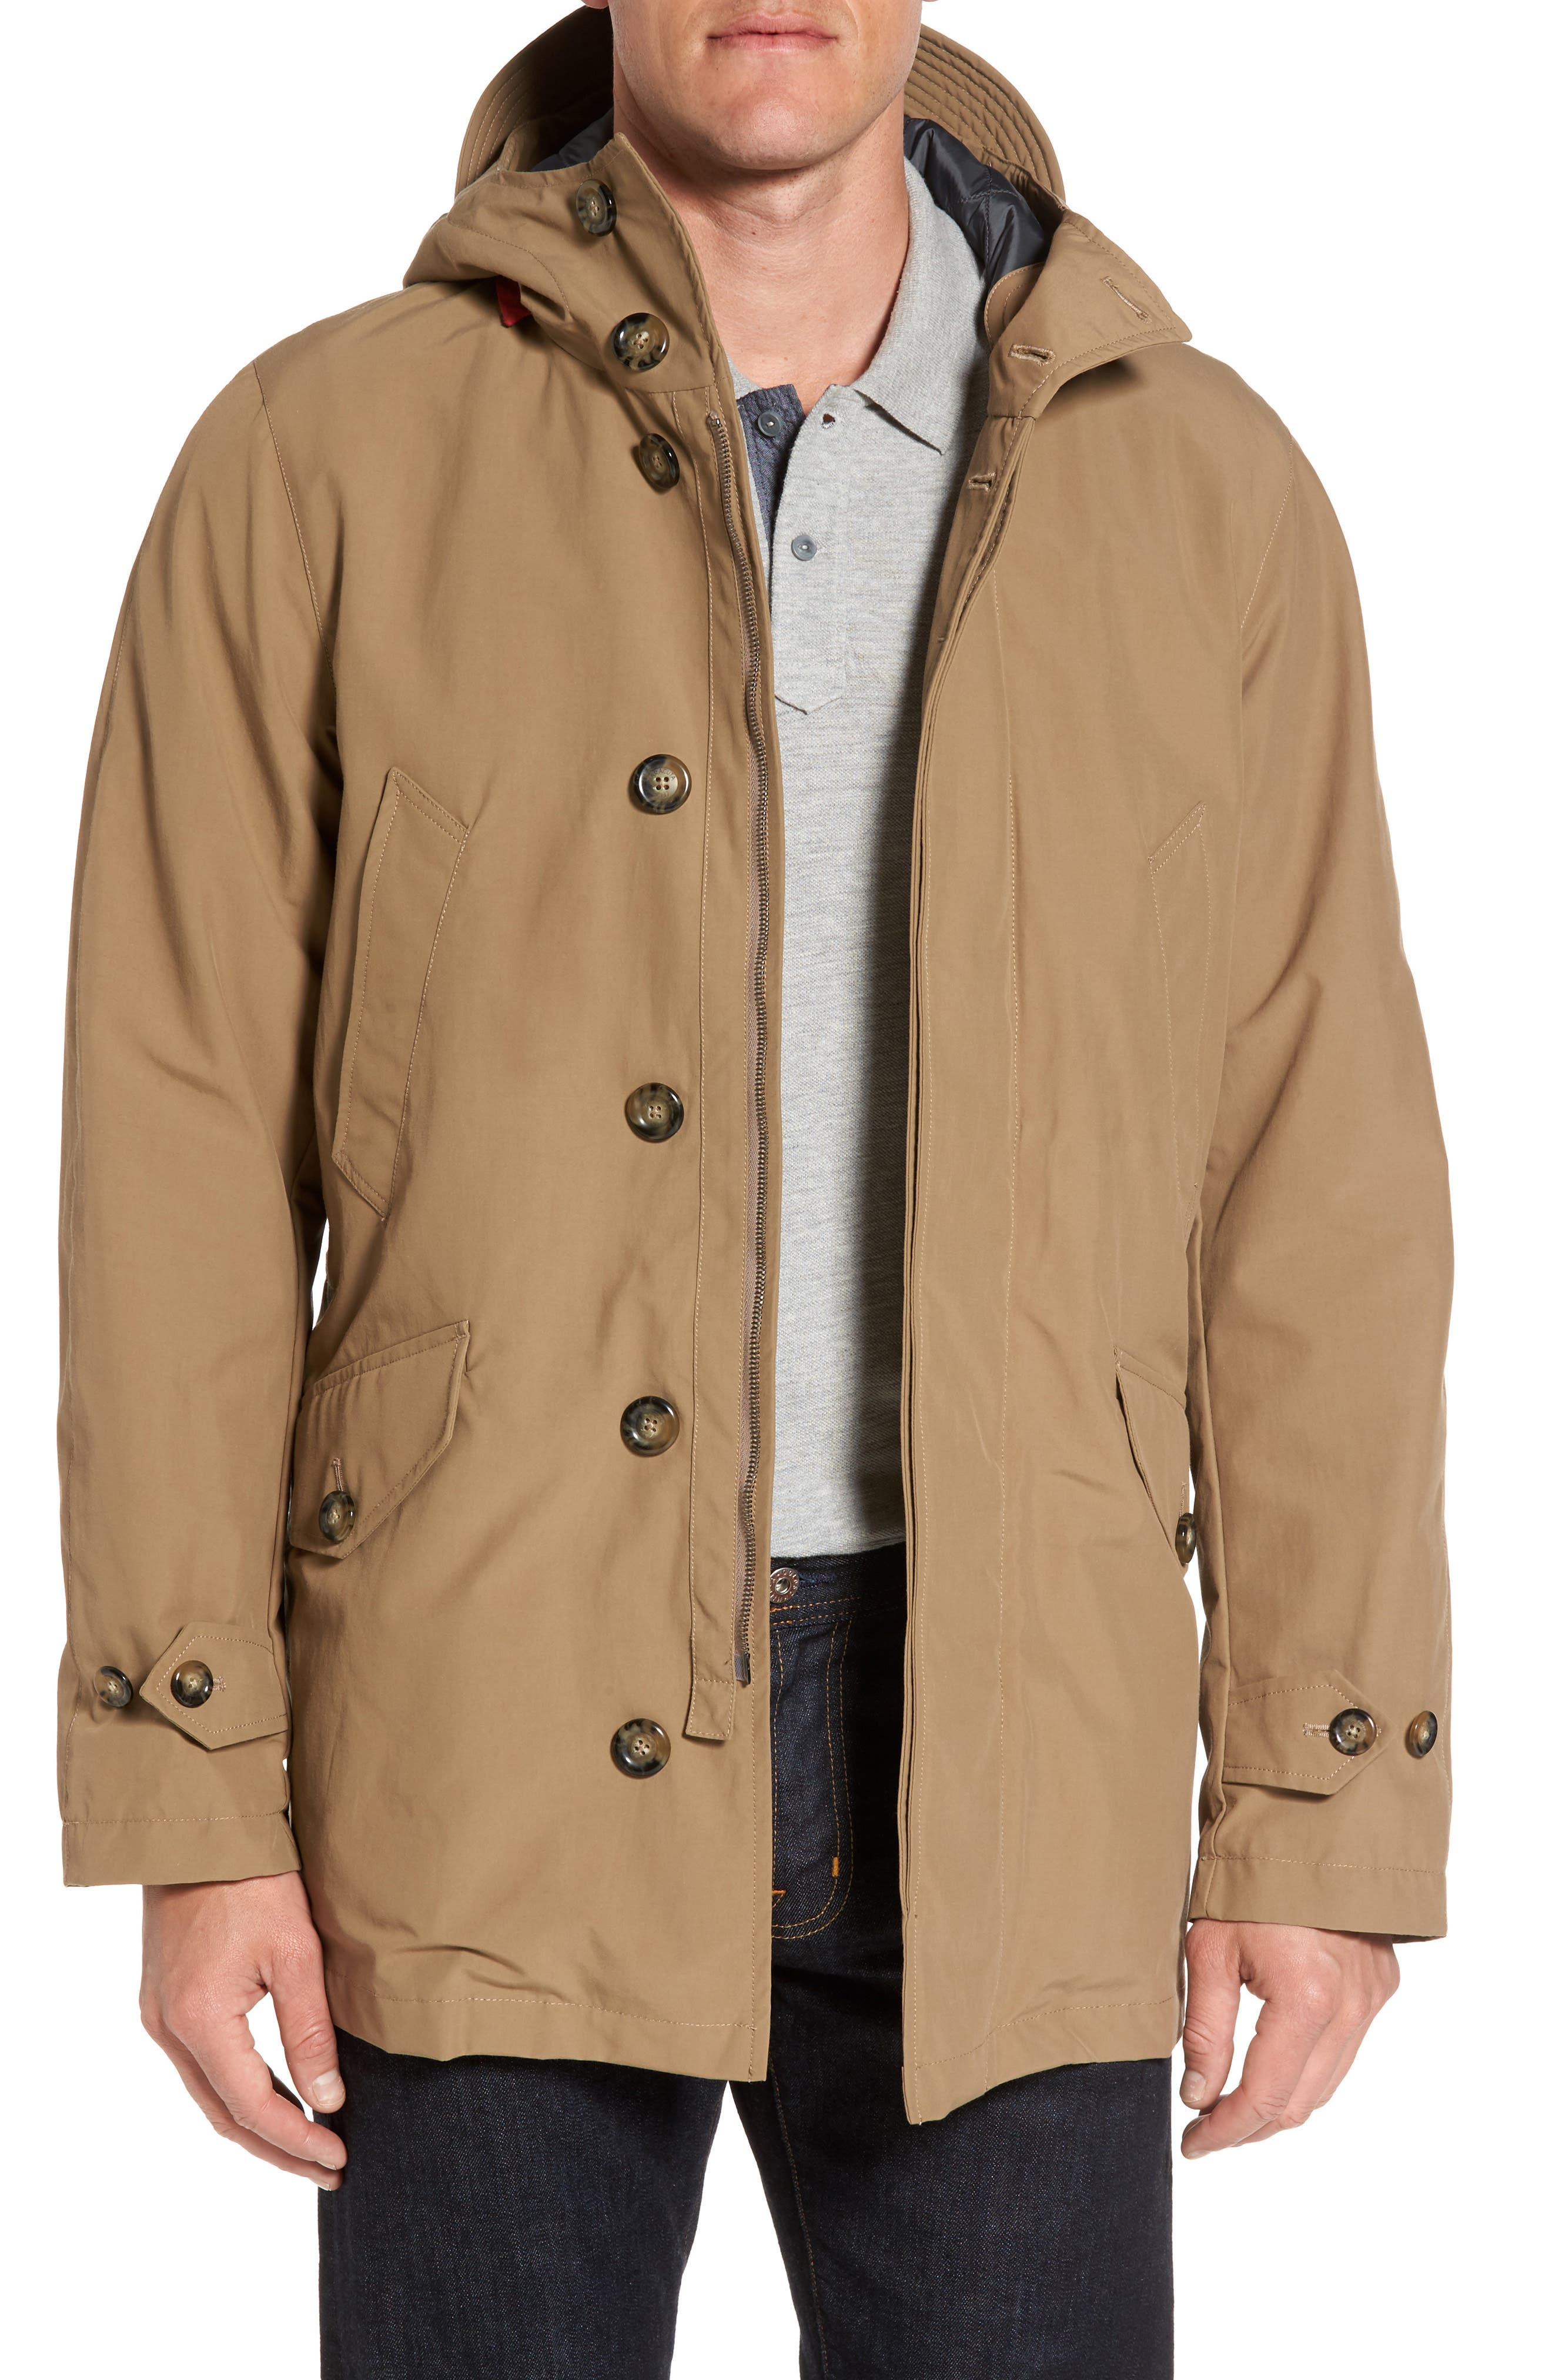 Alternate Image 1 Selected - Baracuta Knott Waterproof Parka